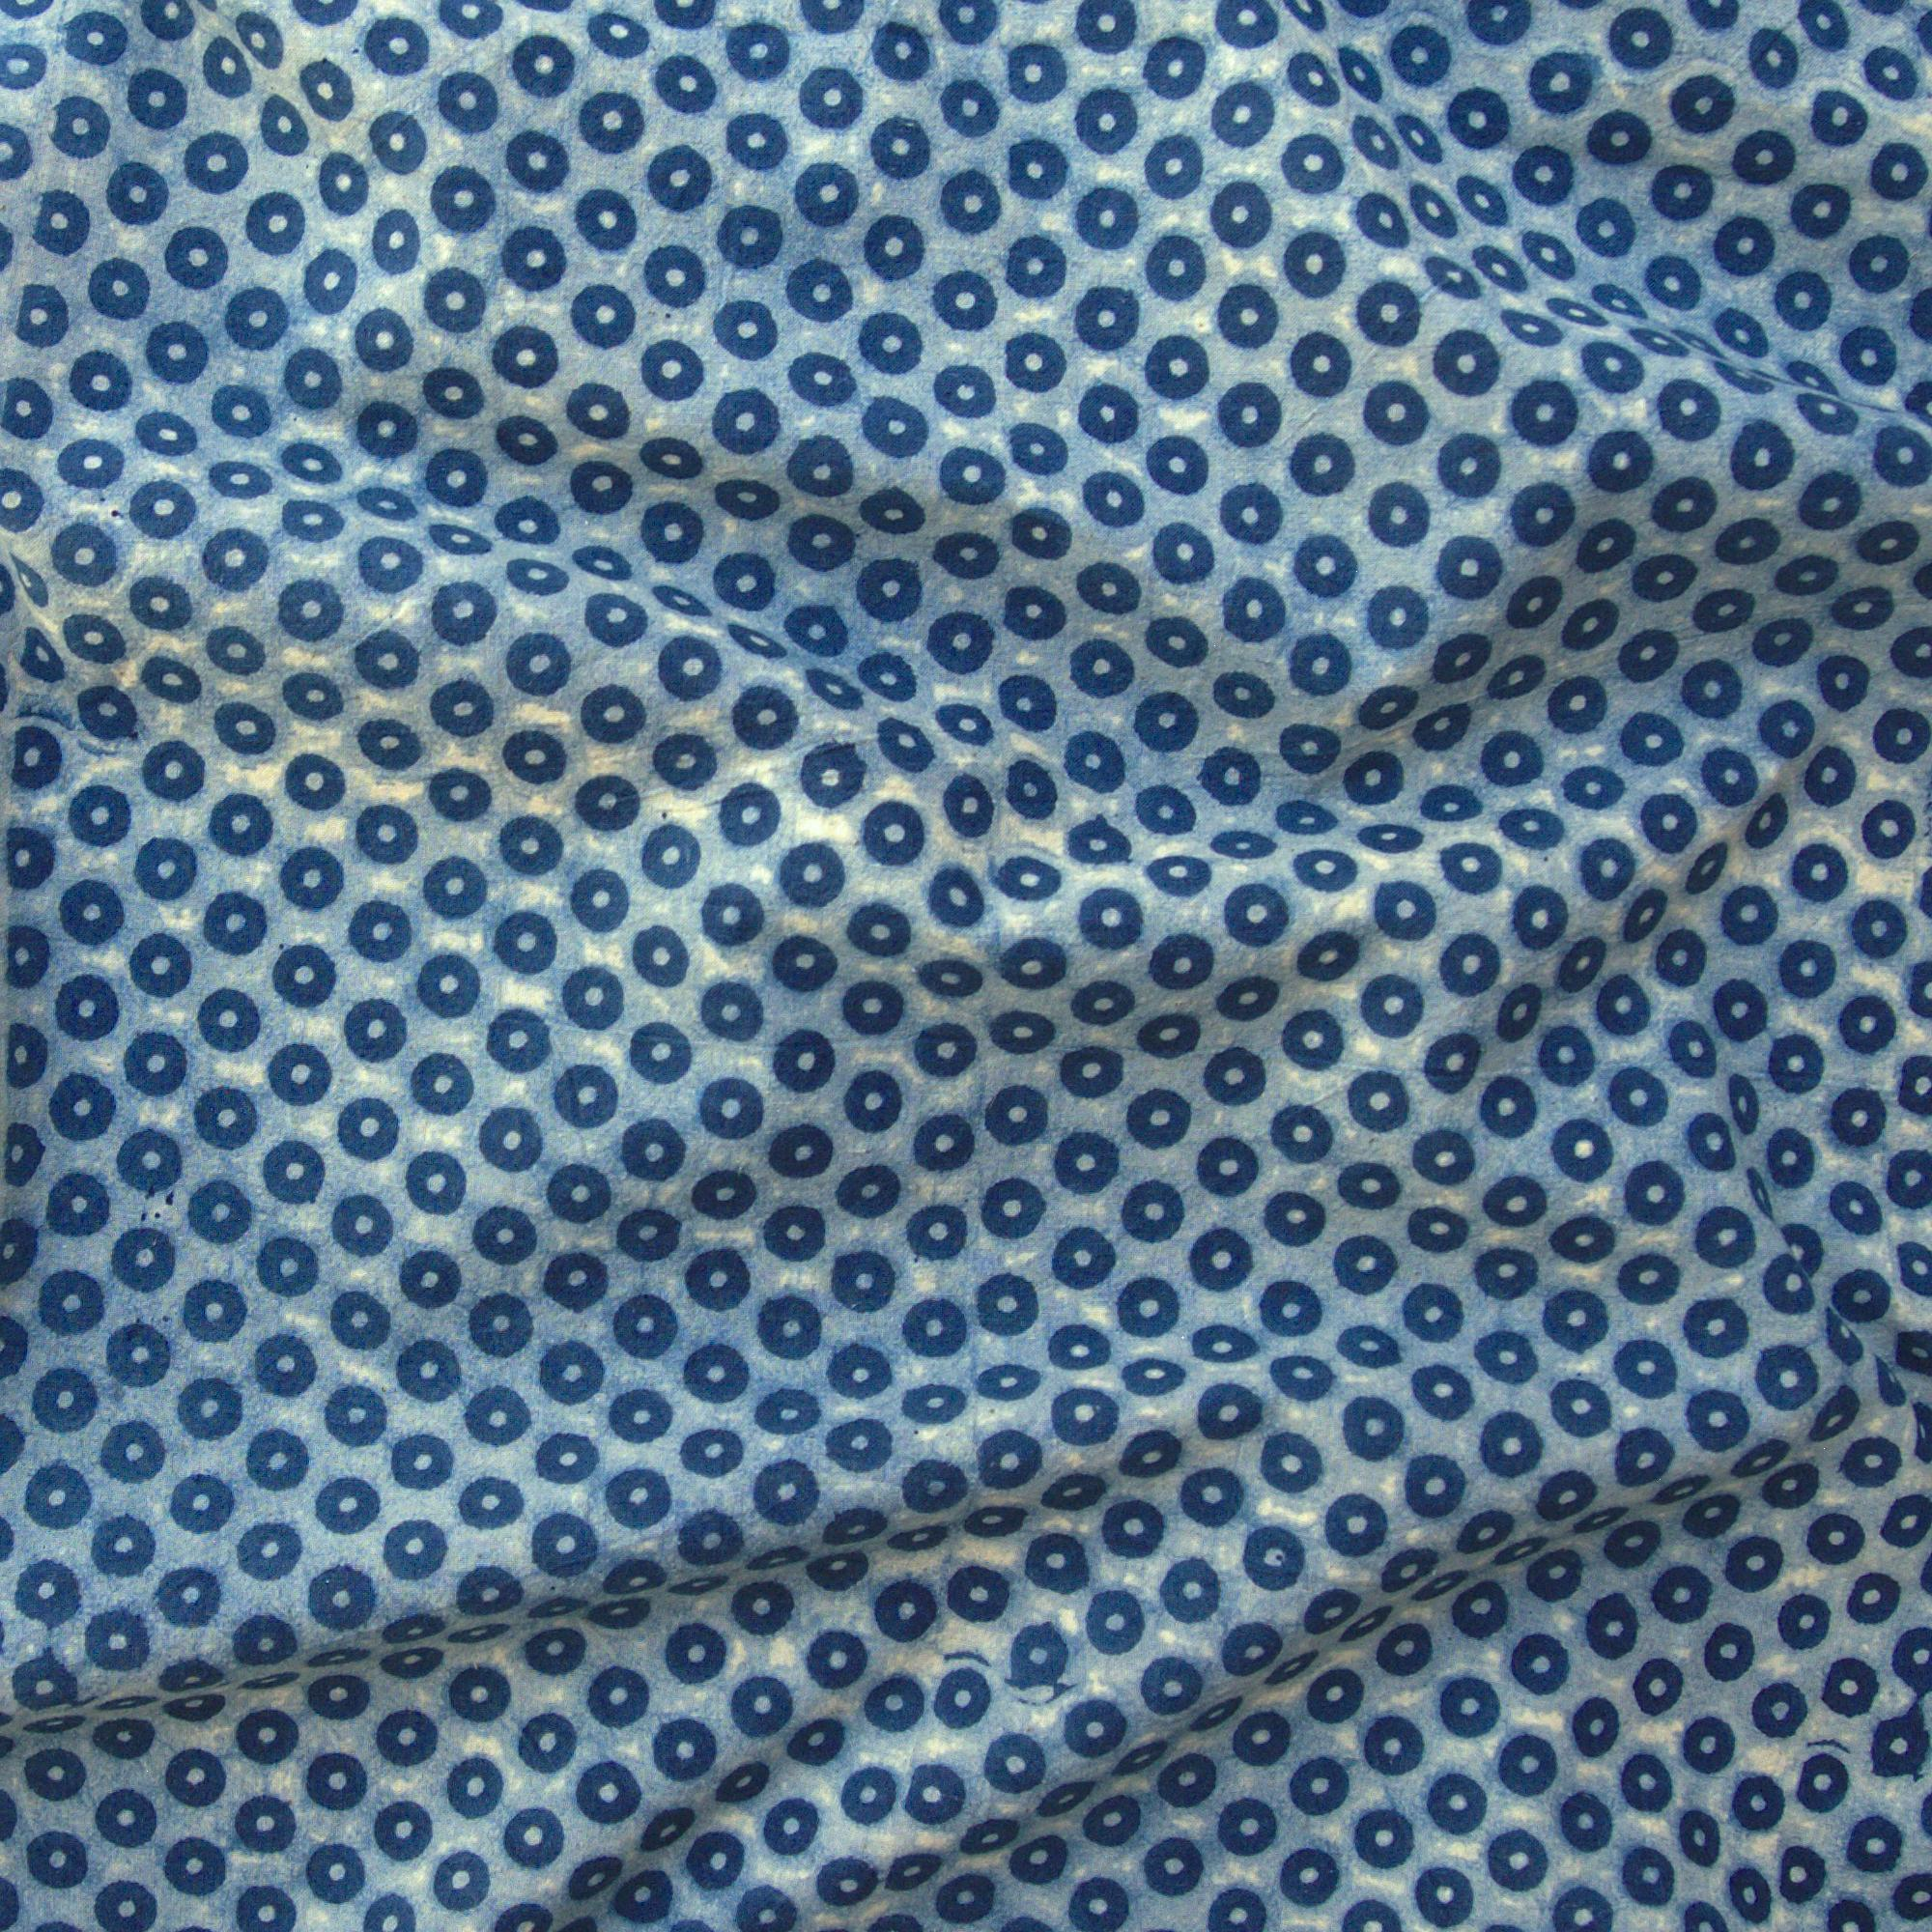 100% Block-Printed Cotton Fabric From India- Ajrak - Indigo White Resist Pins Print - Contrast